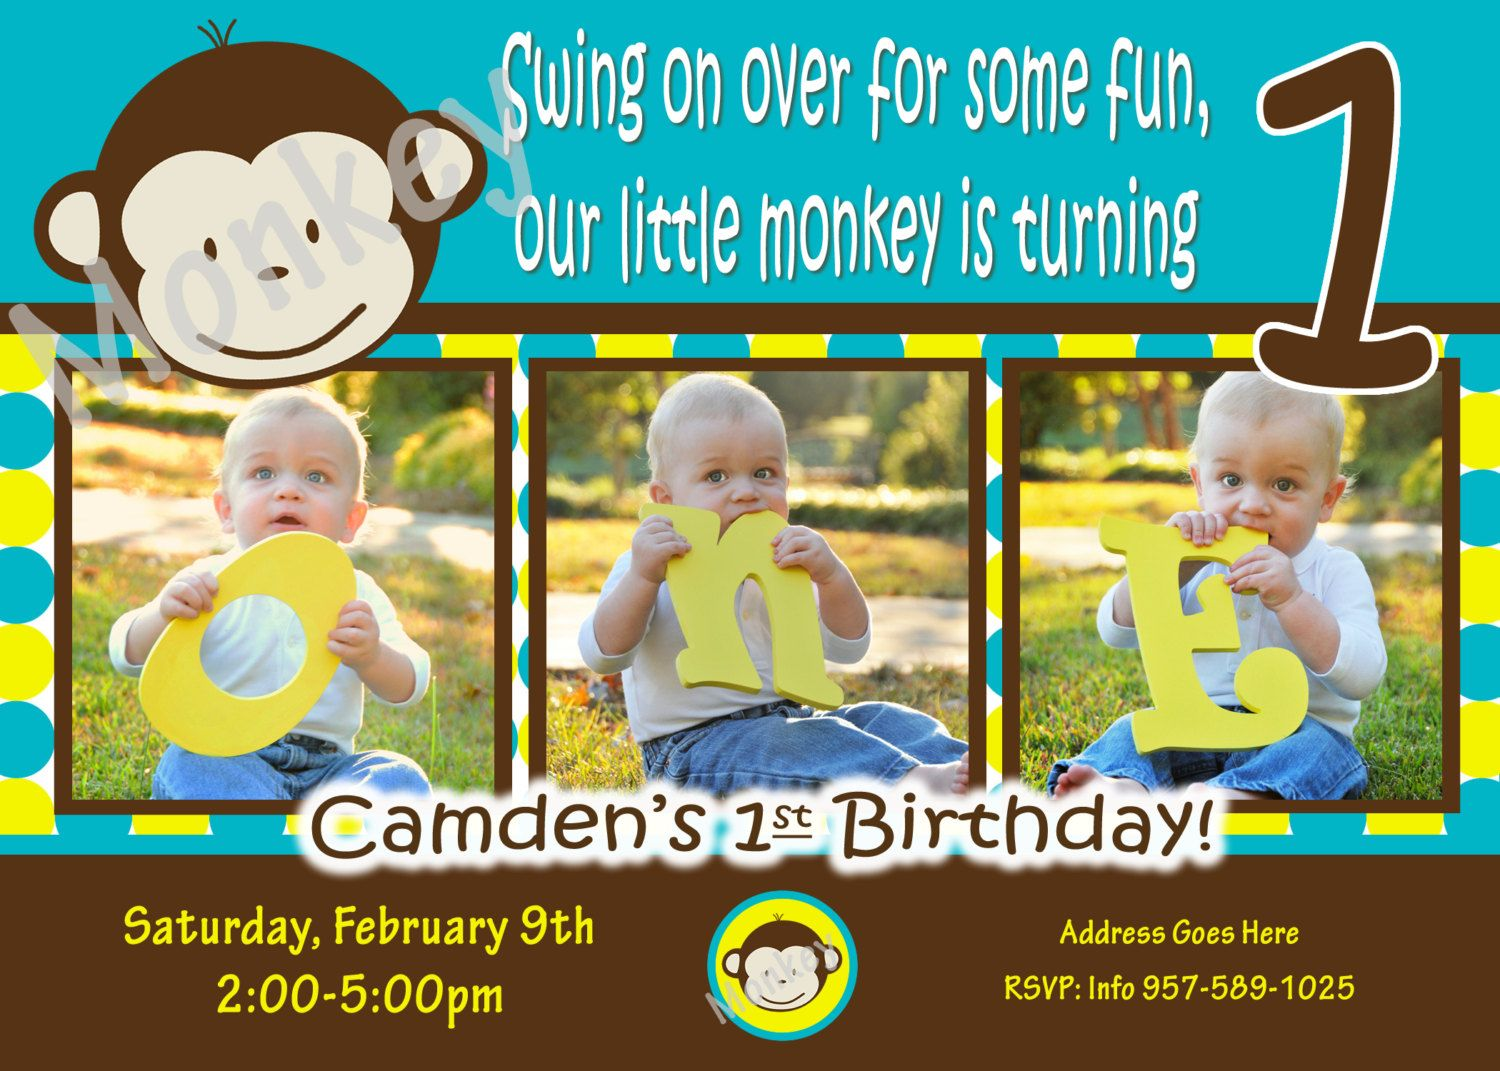 Mod monkey invitation mod monkey invite photo 1st birthday party mod monkey invitation mod monkey invite photo 1st birthday party boy pictures invite 1 year old 1st birthday invitation boy 1 year invite stopboris Gallery